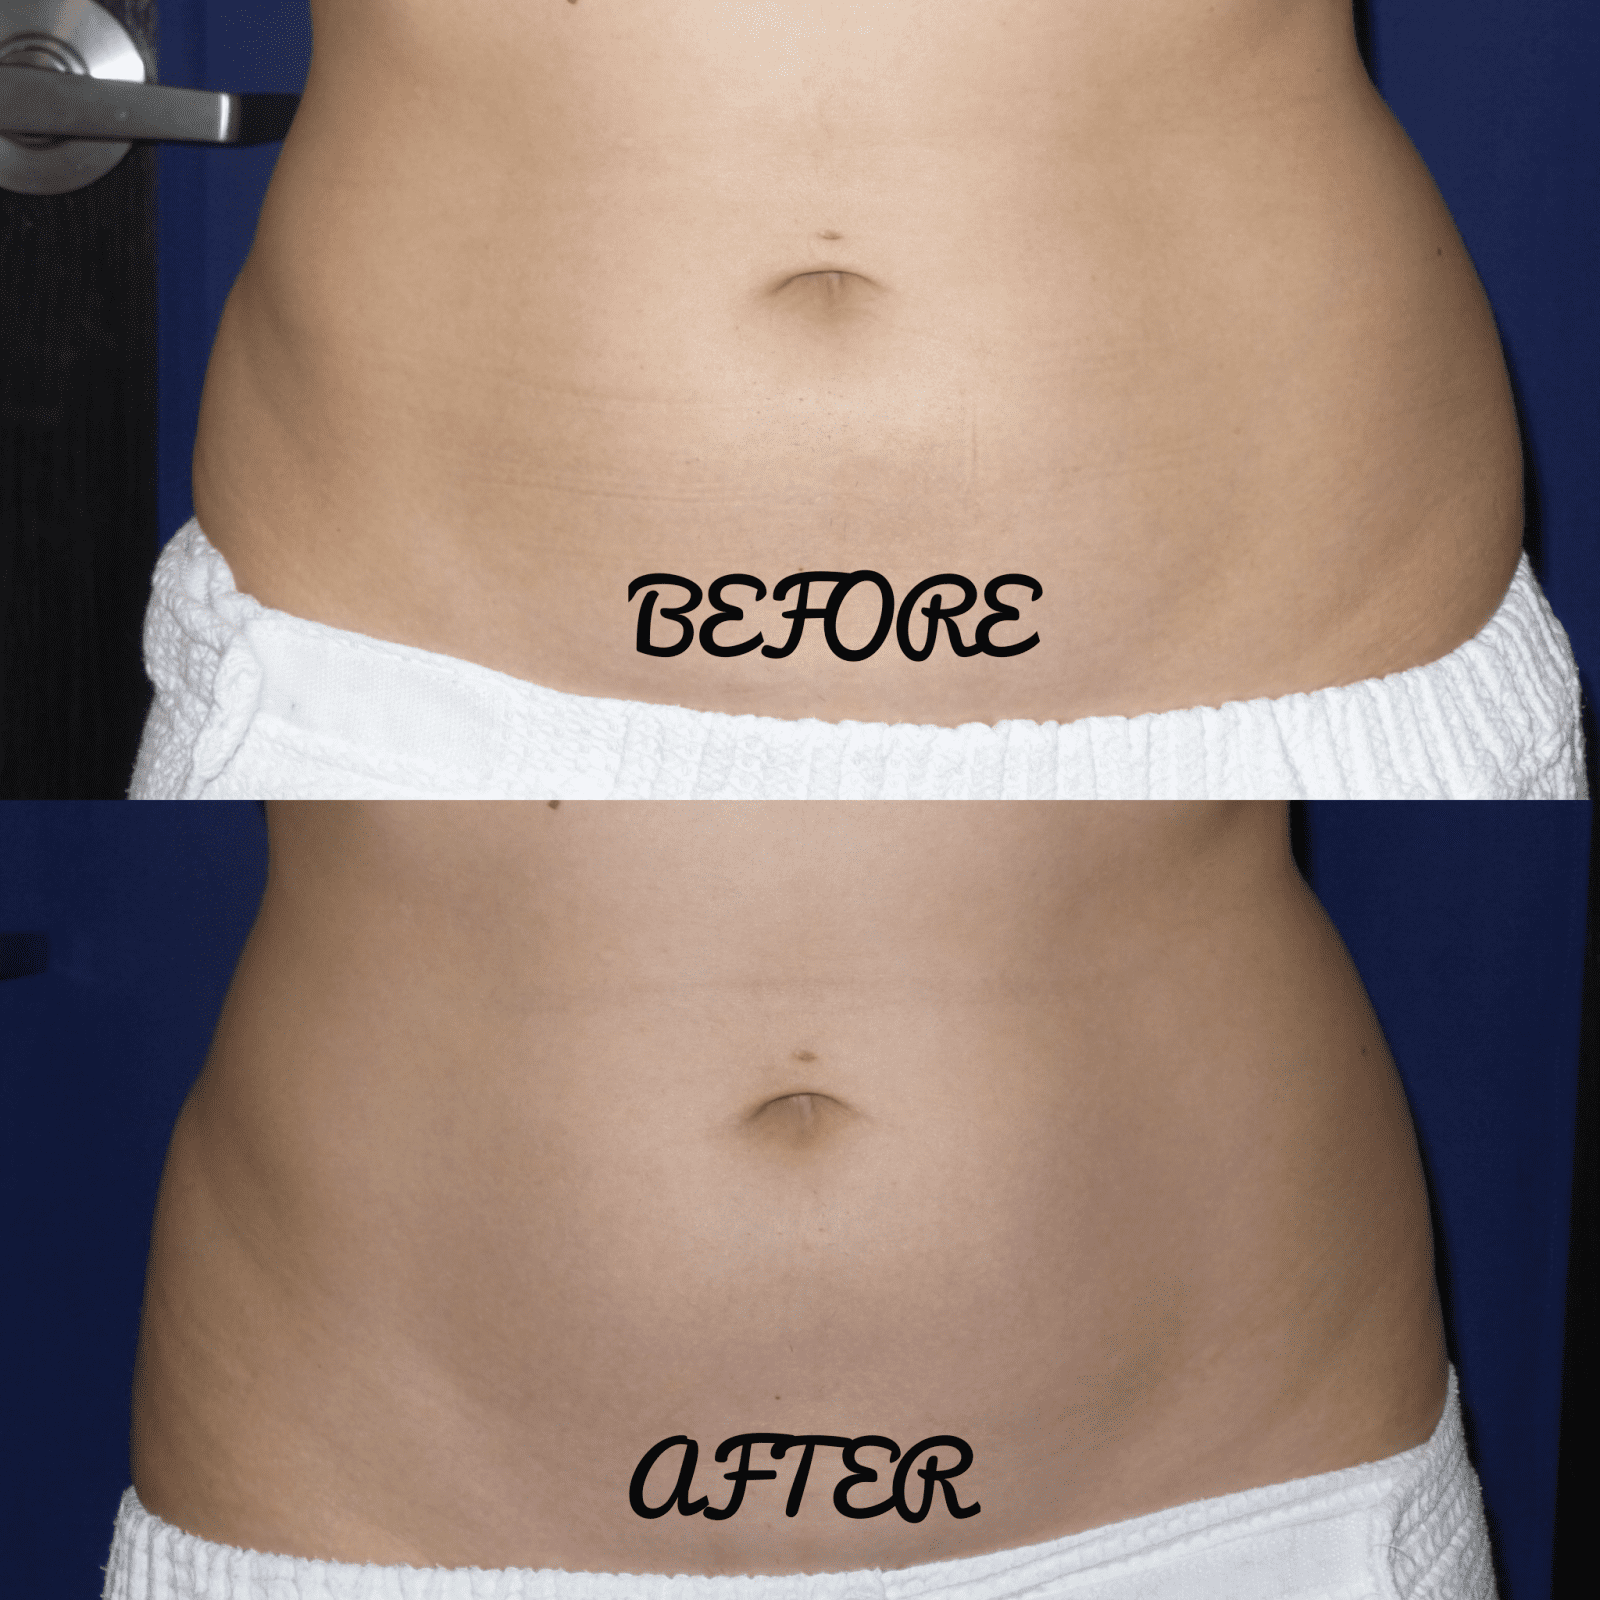 This is a before and after body contouring shot of the front view of my belly.